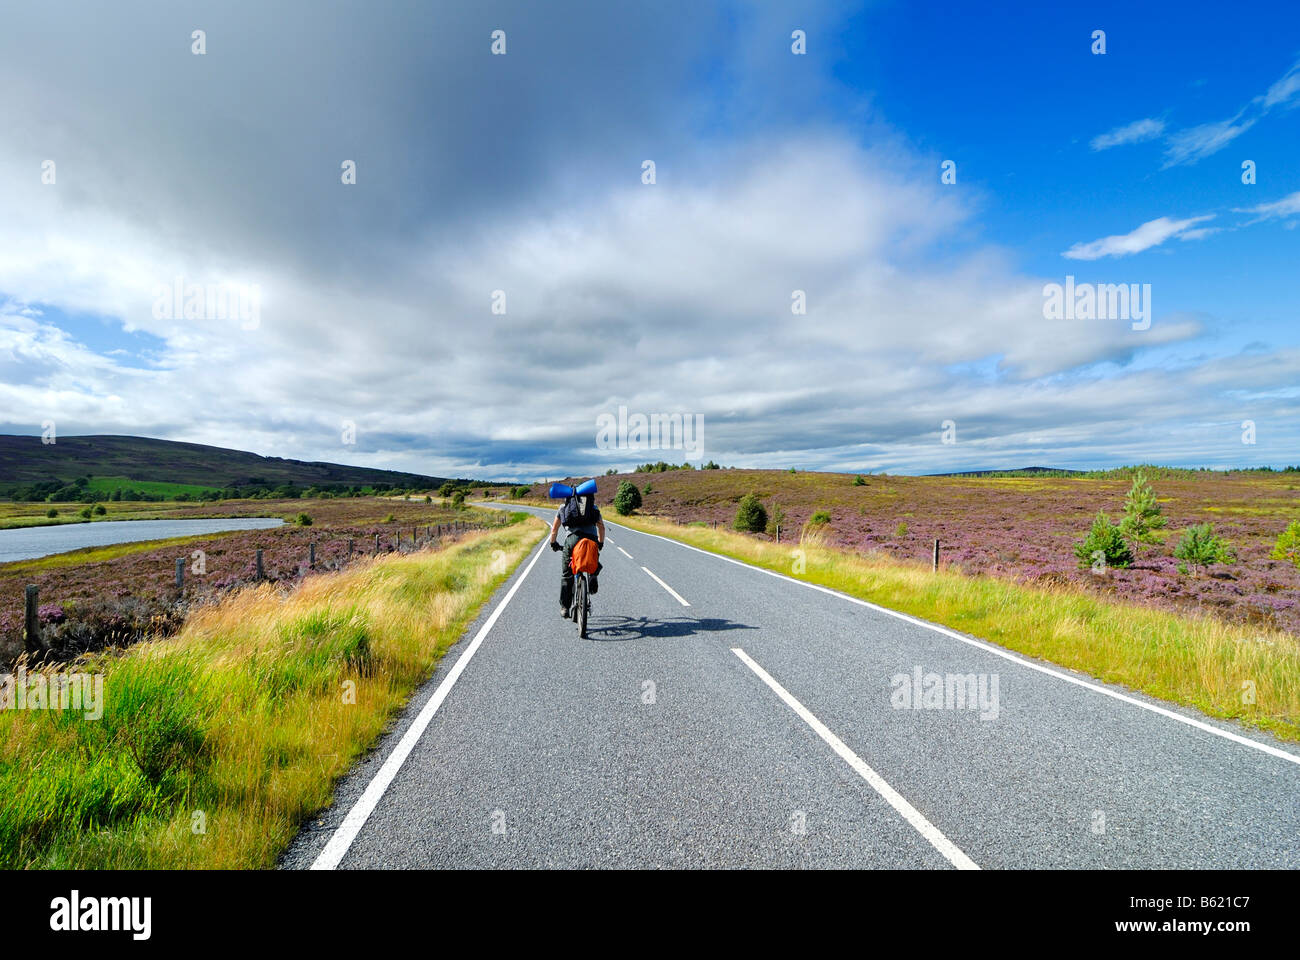 Cyclist in the Grampian Mountains, Scotland, Great Britain, Europe - Stock Image